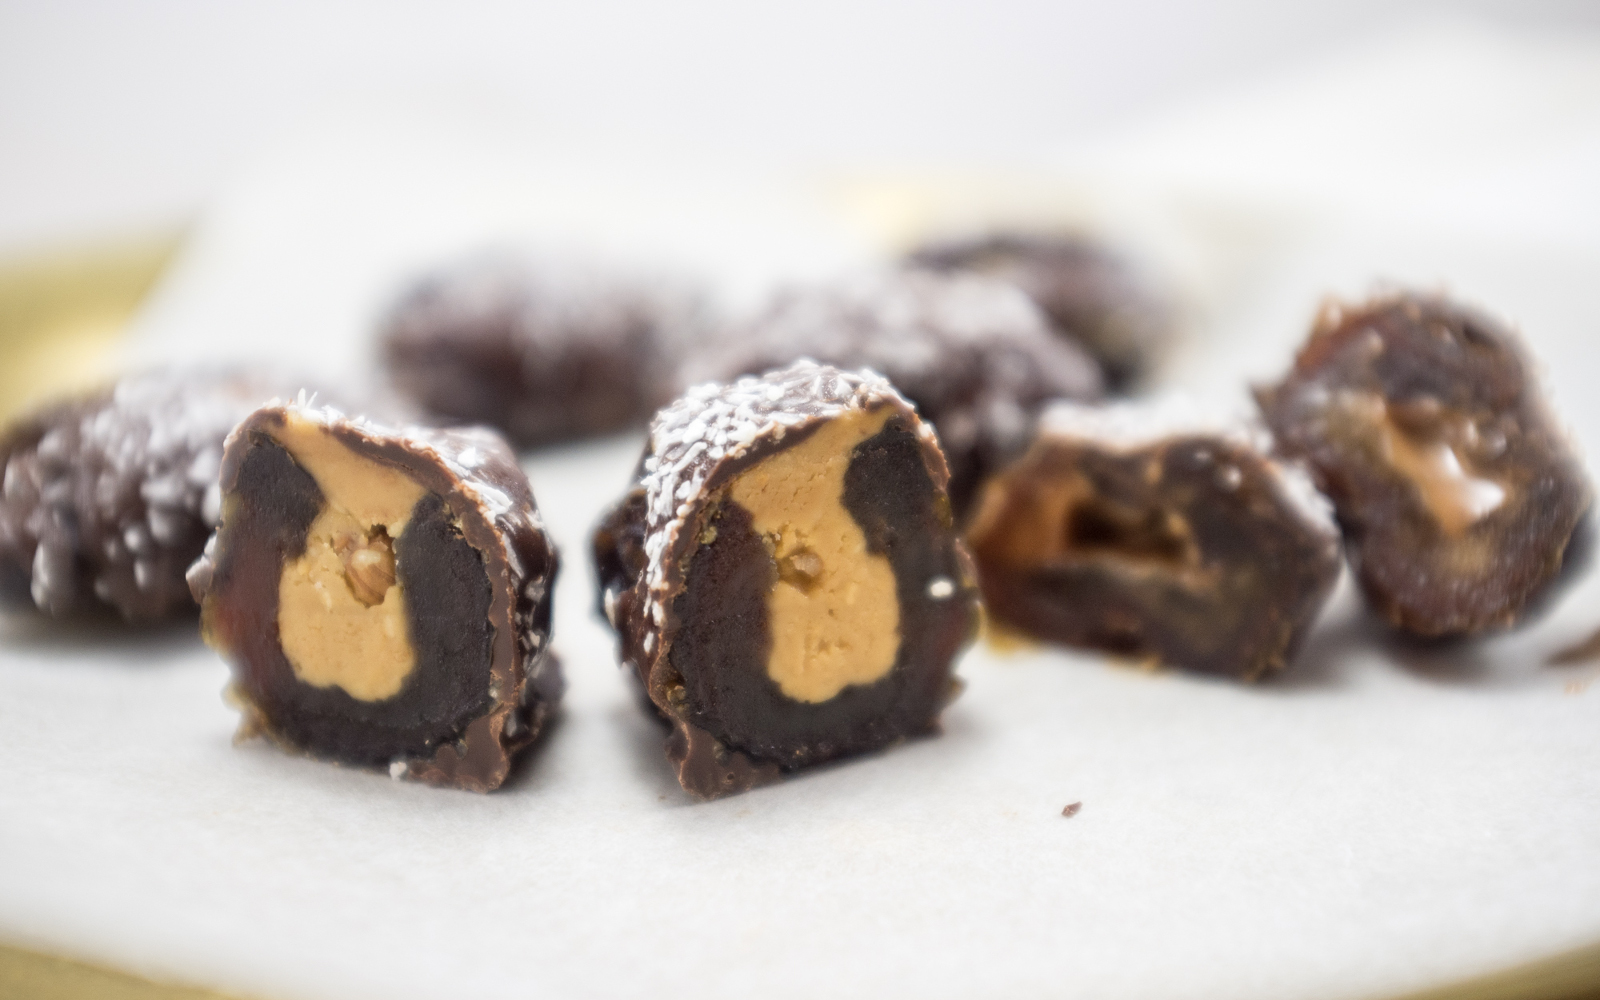 nut-butter chocolate dates